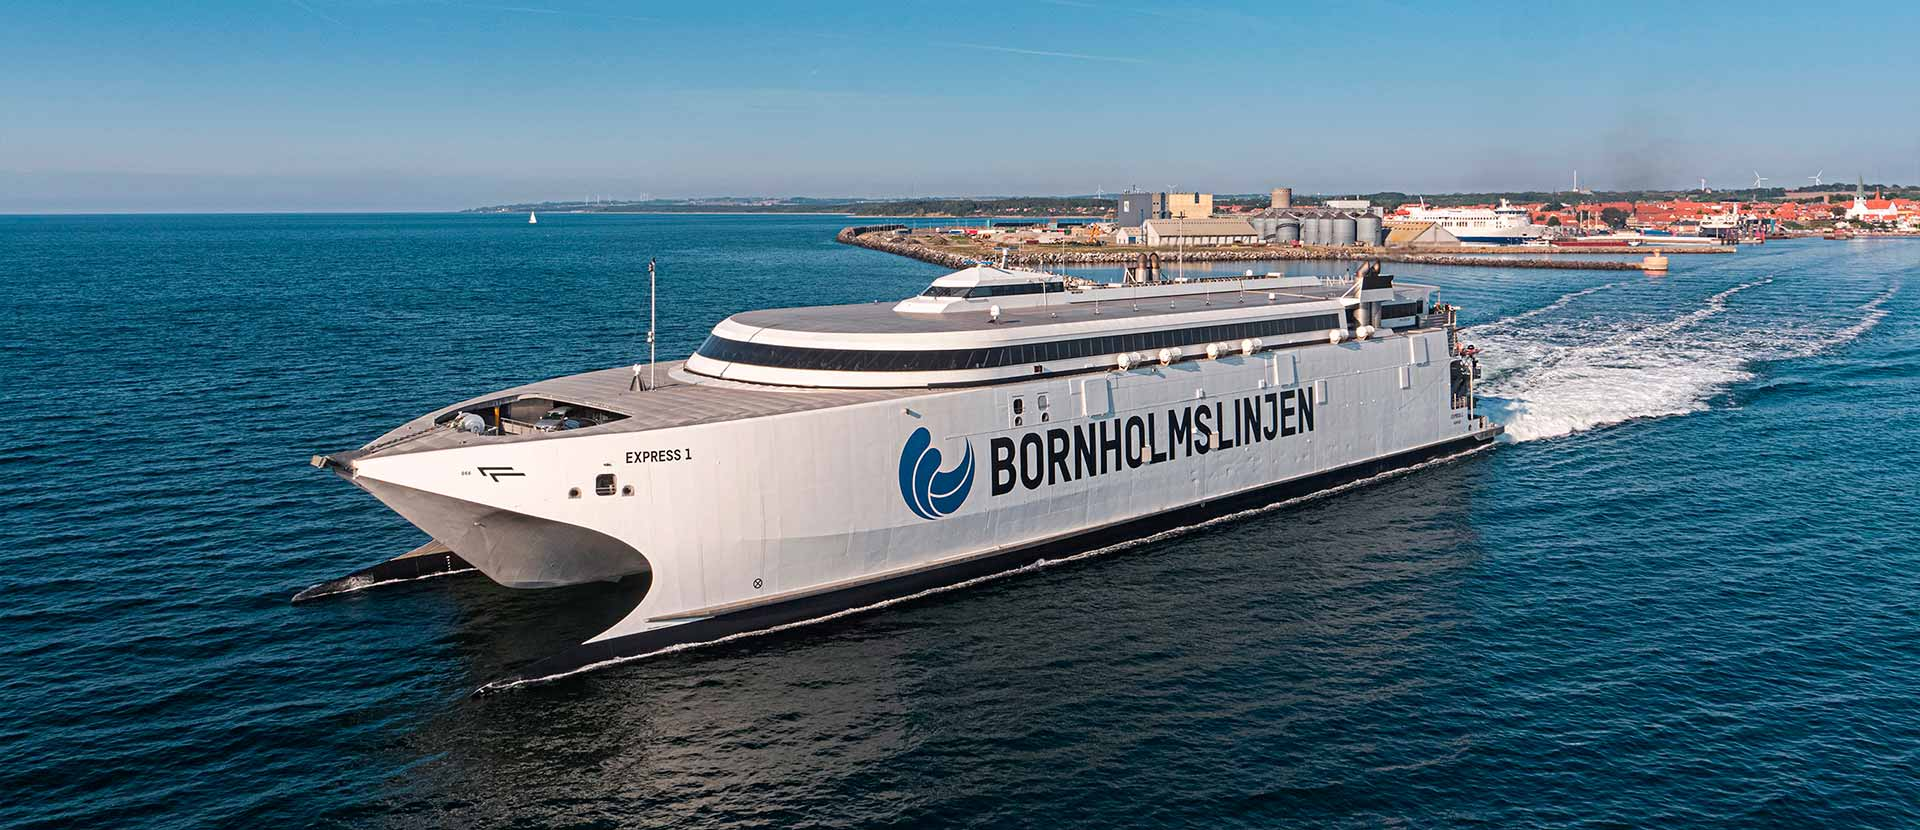 An high-speed ferry that leaves the harbour of Rønne on Bornholm